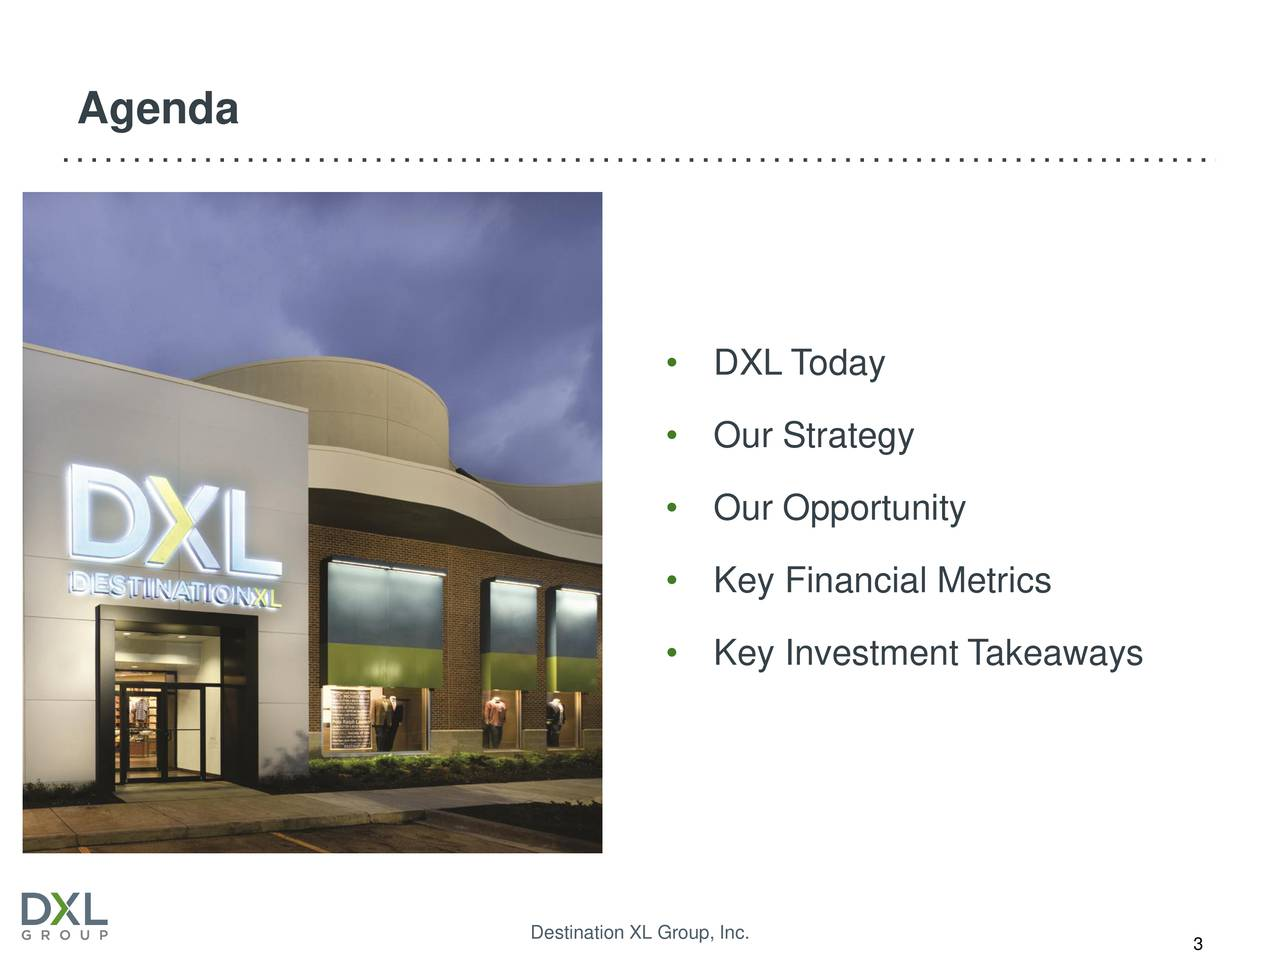 DXL Today Our Strategy Our Opportunity Key Financial Metrics Key Investment Takeaways Destination XL Group, Inc.